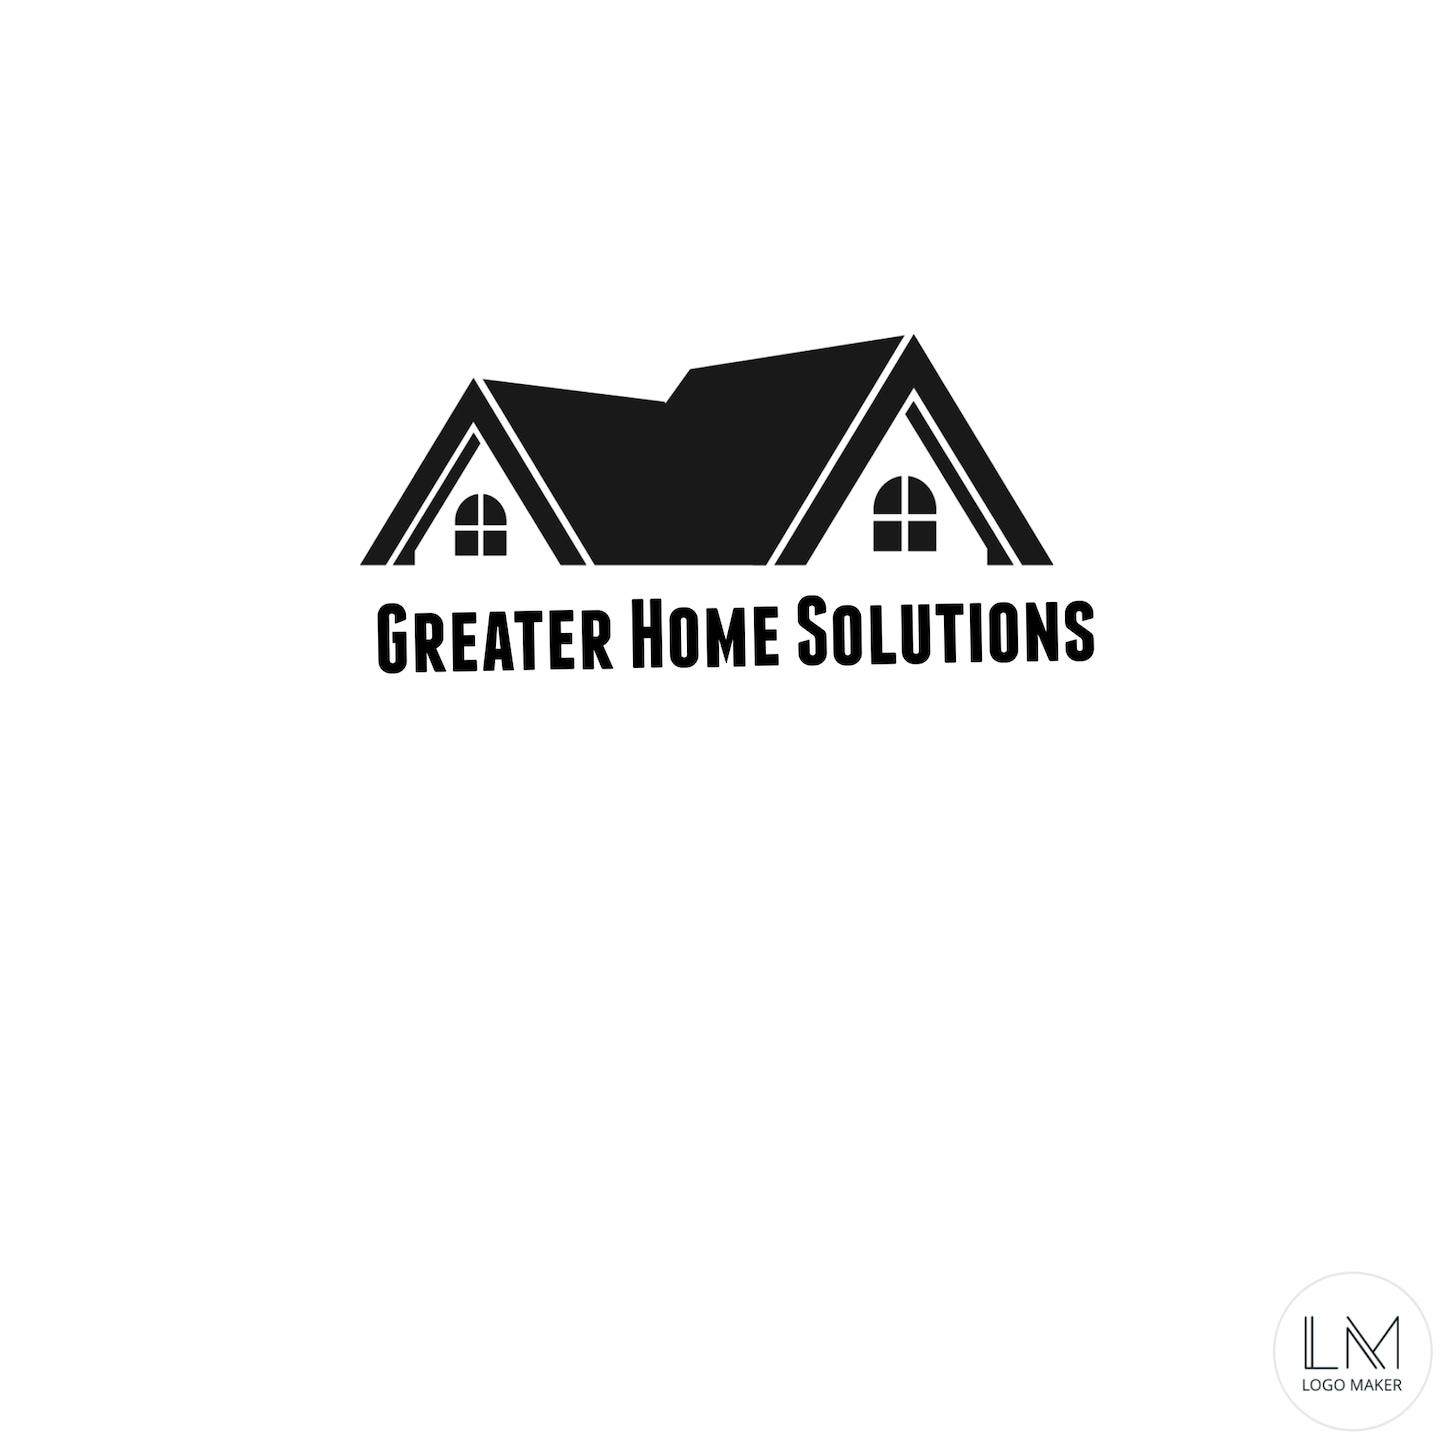 Greater Home Solutions